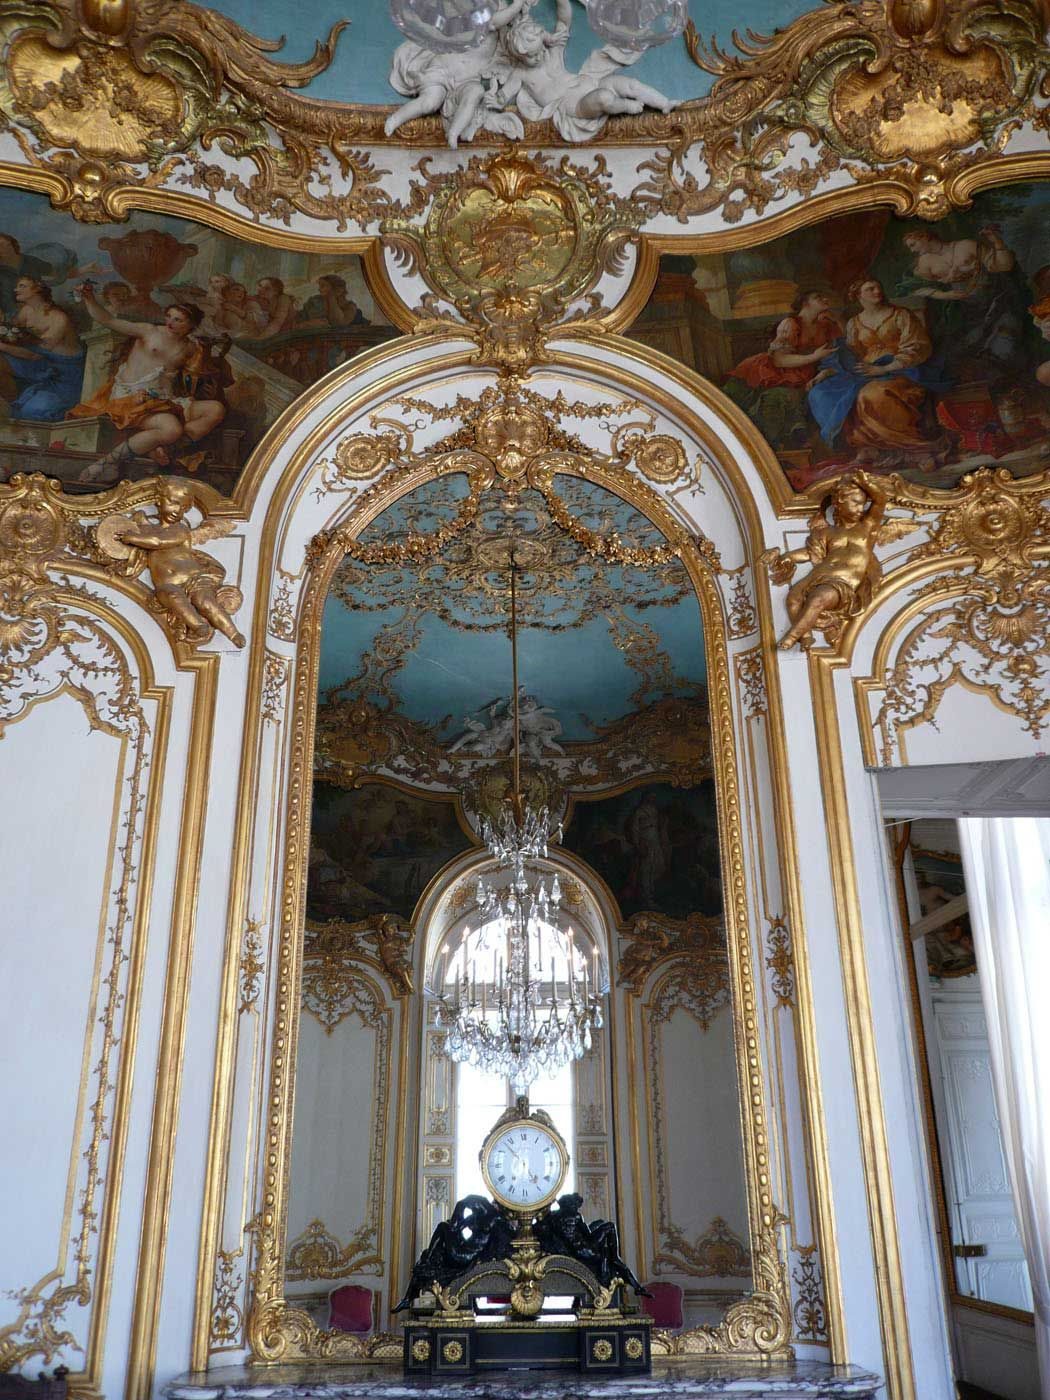 H tel de soubise salon de la princesse paris high for Salon design paris